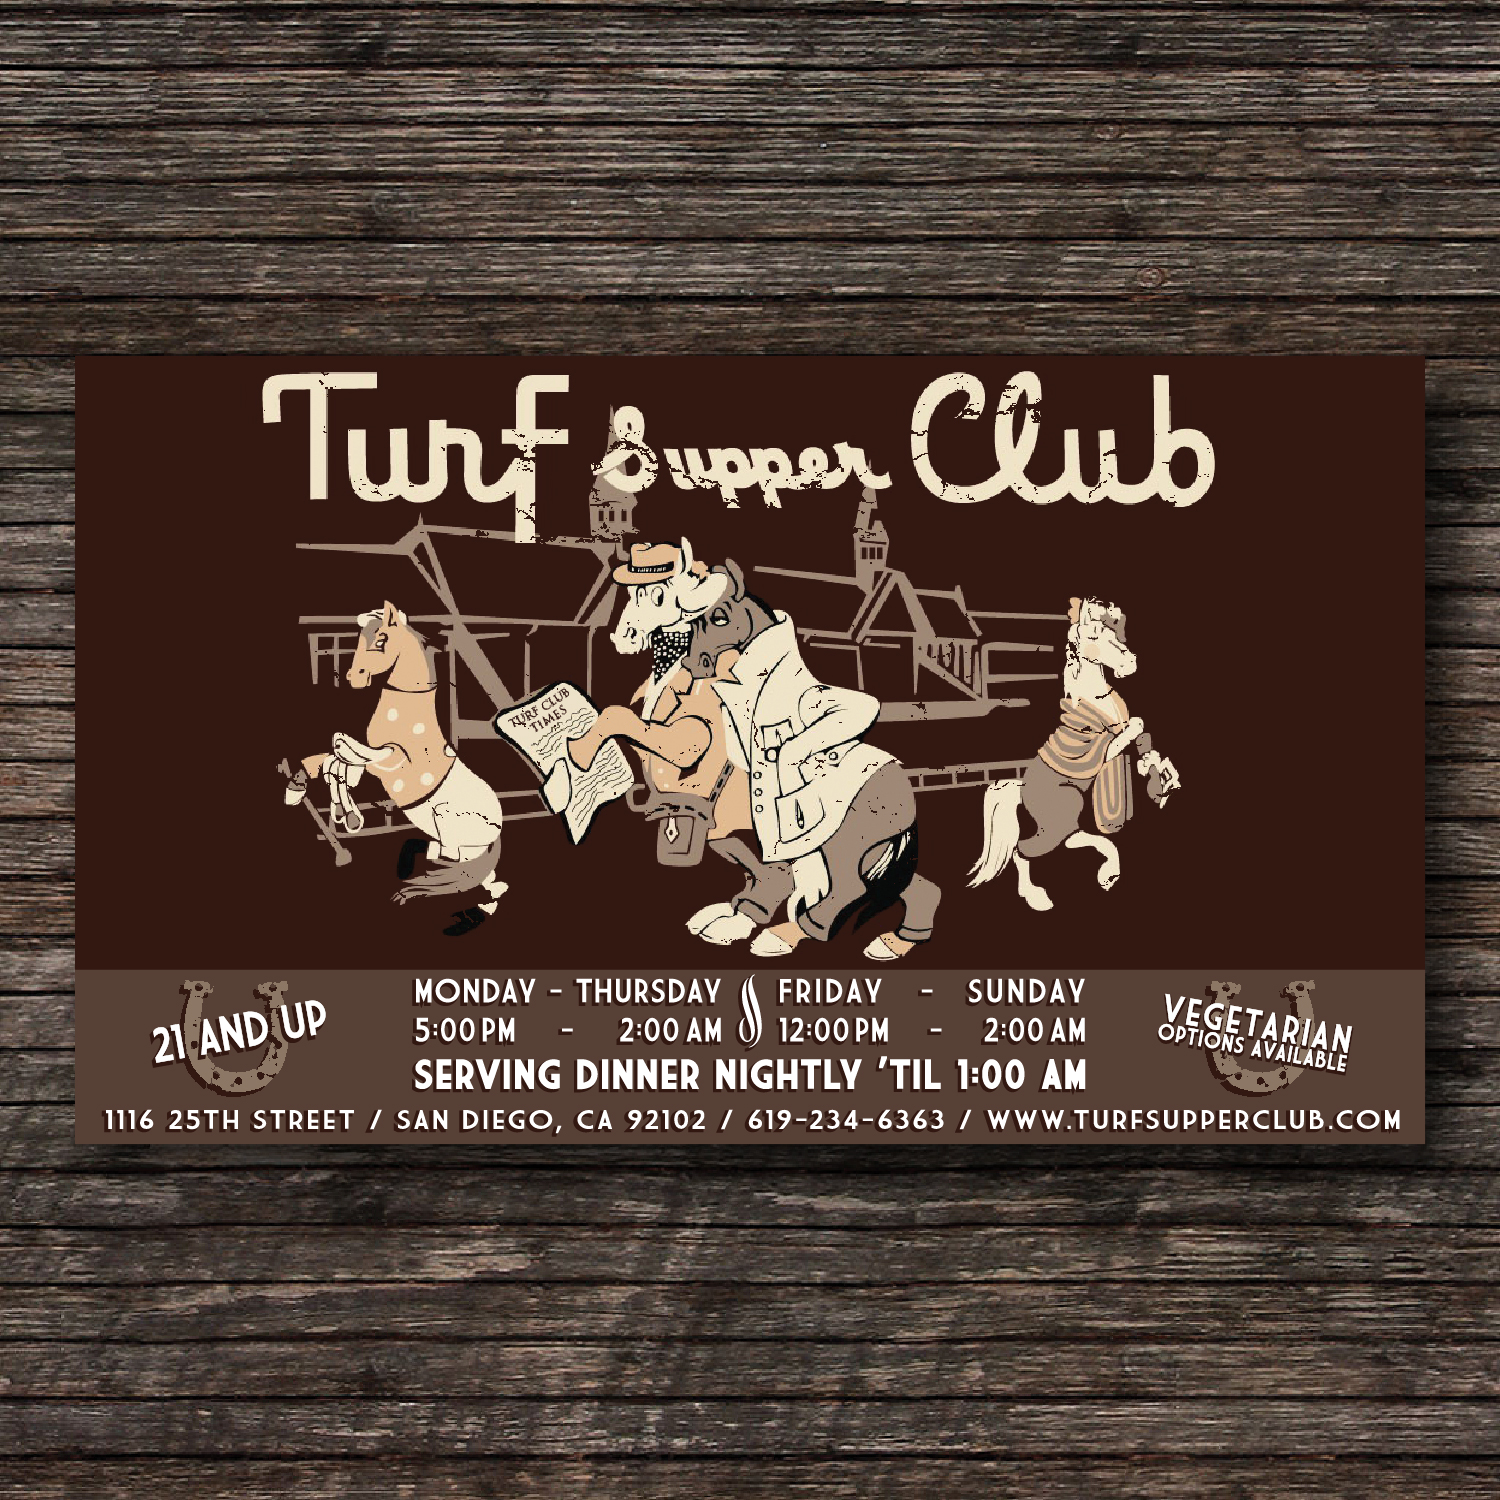 Turf Supper Club.